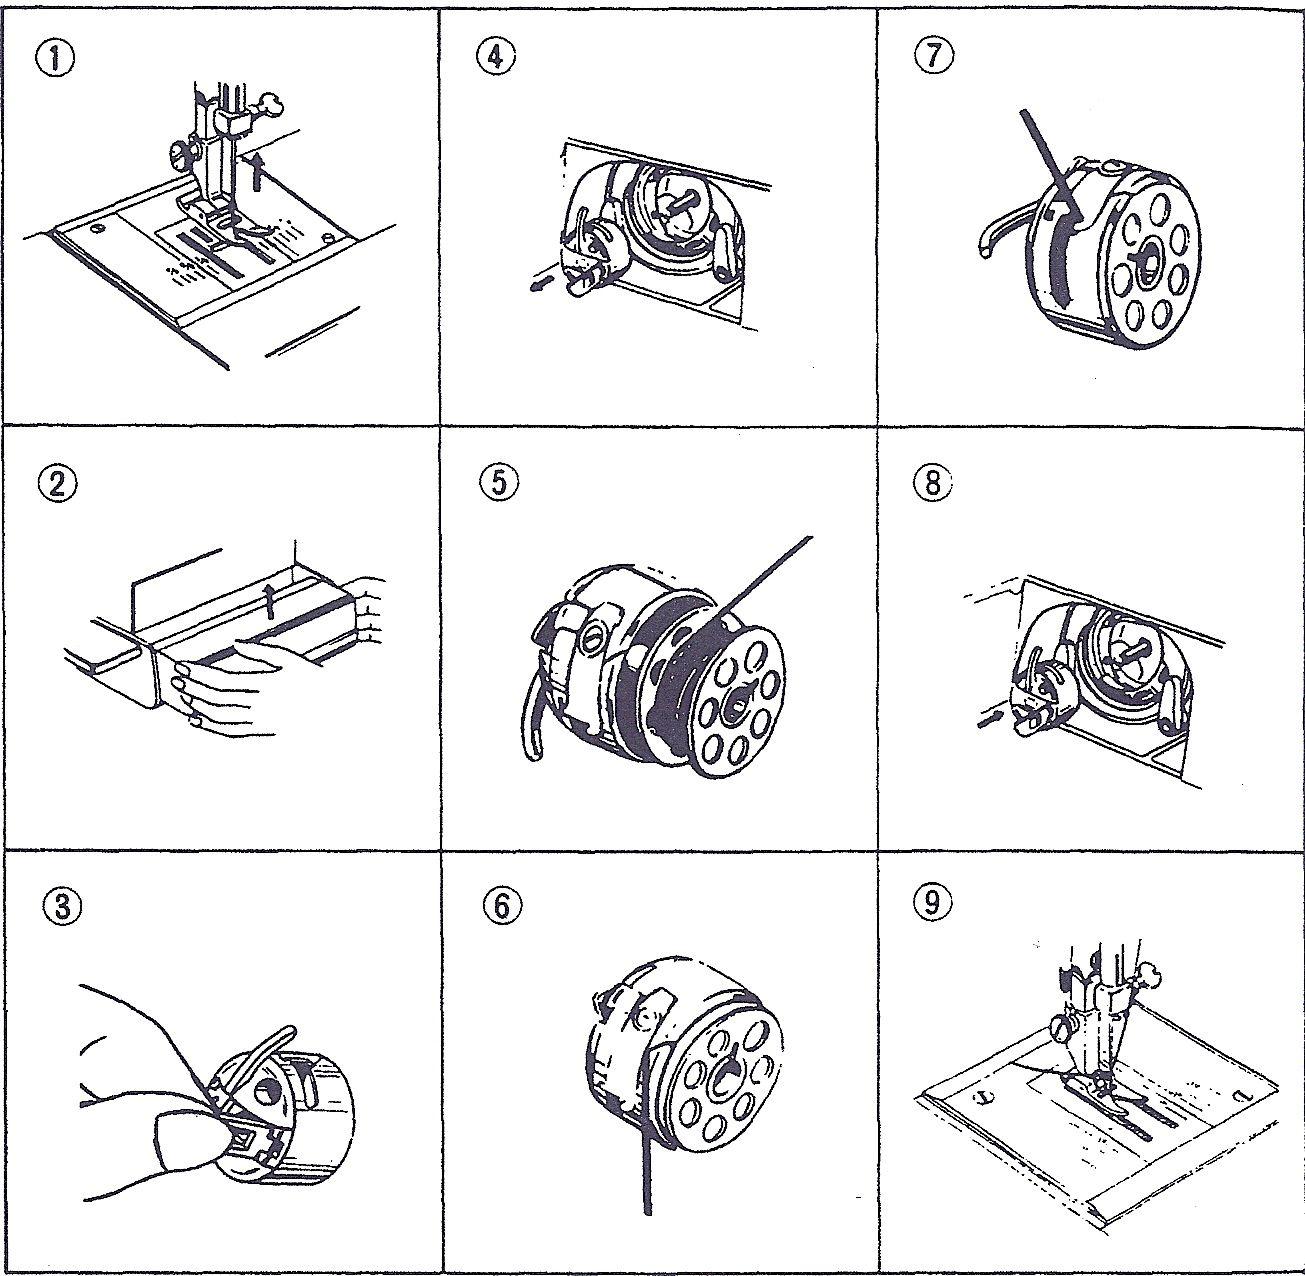 sears kenmore 158 10401 (model 1040) sewing machine a review HVAC Wiring Diagrams sears kenmore 158 10401 (model 1040) sewing machine a review Karcher Wiring Diagram